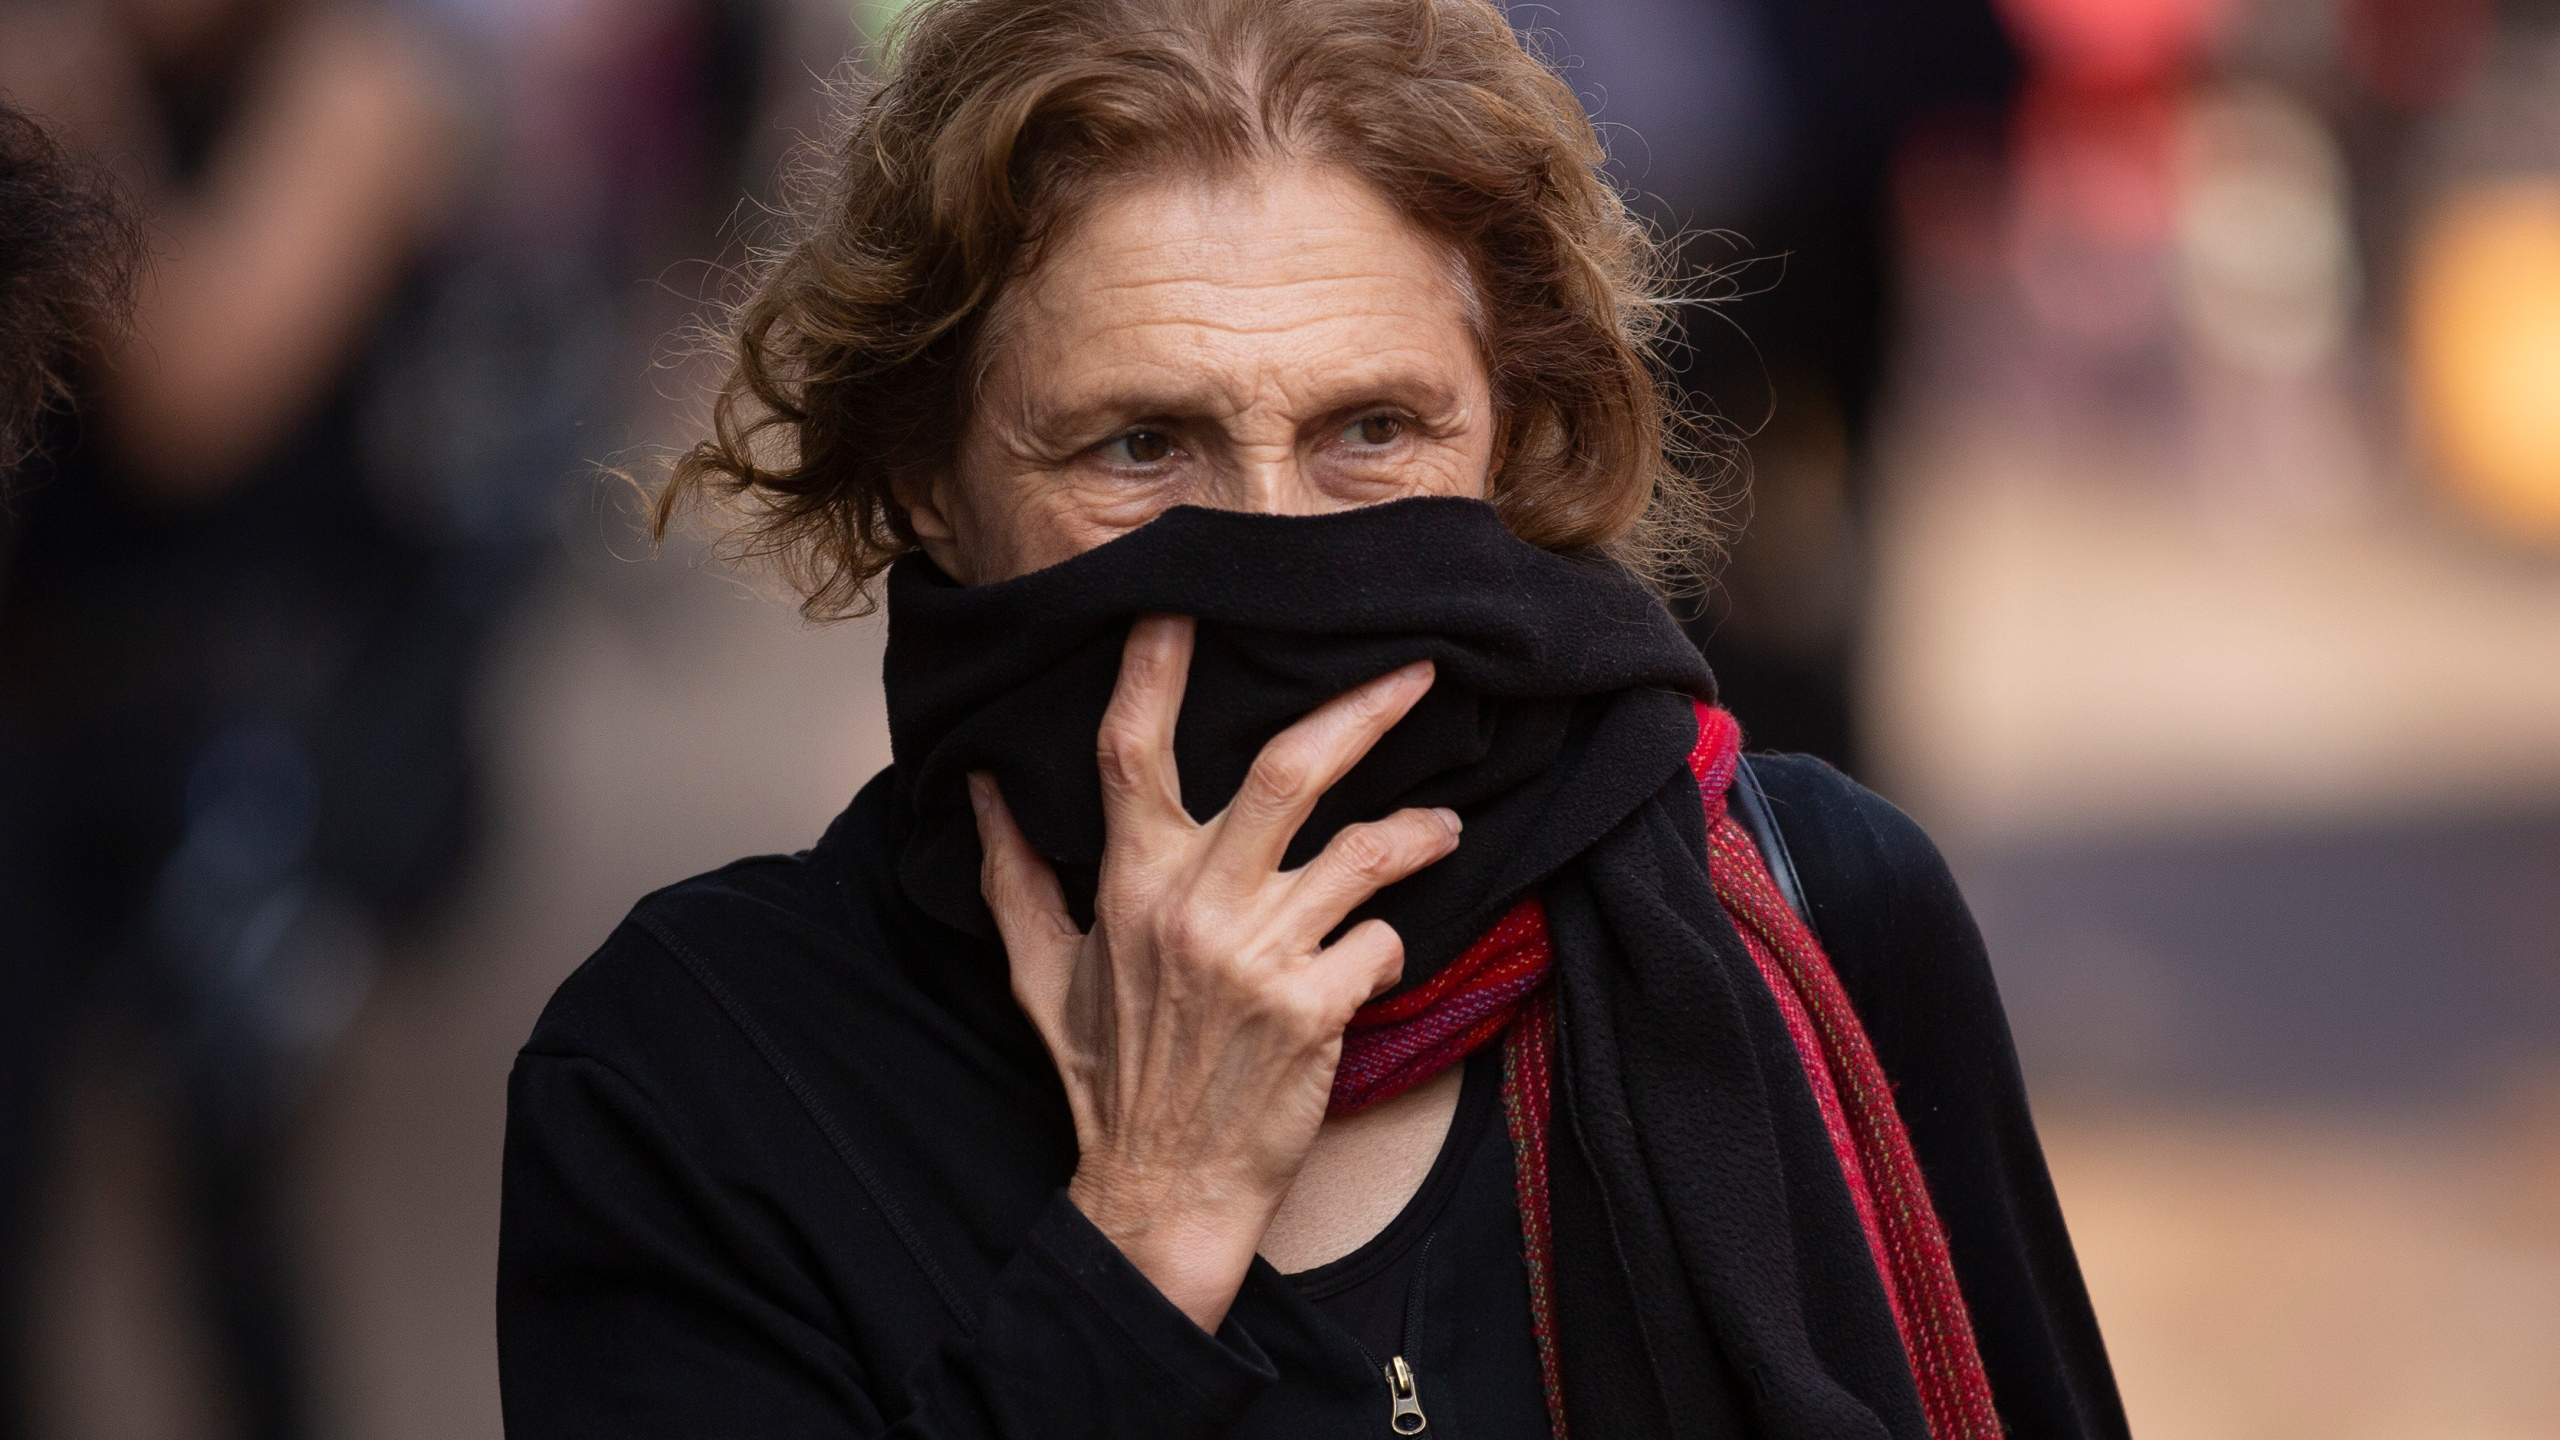 Woman covers face with scarf